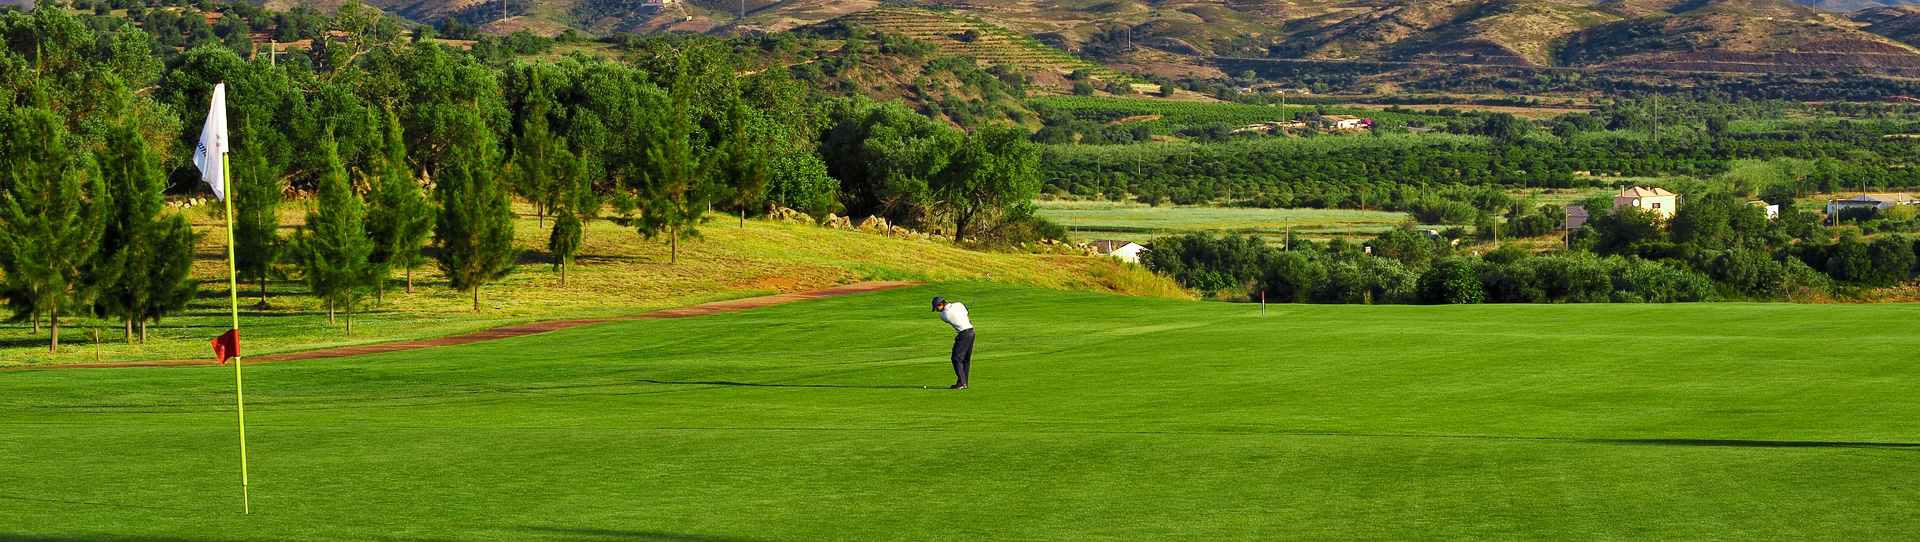 Benamor Golf Course - Photo 3